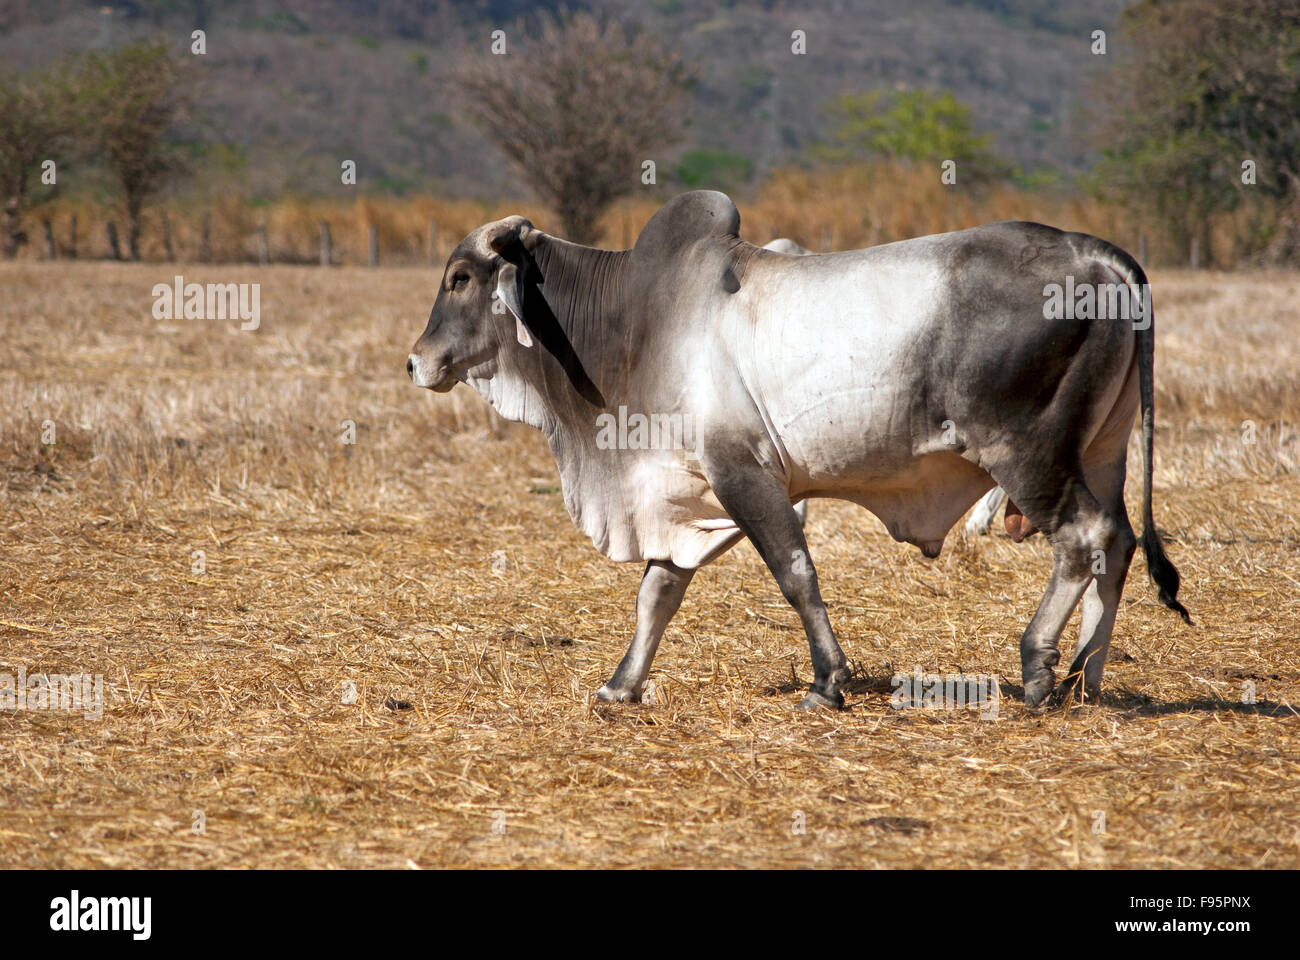 Pictures of brahma bulls Miniature Cattle Breeds for home meat production